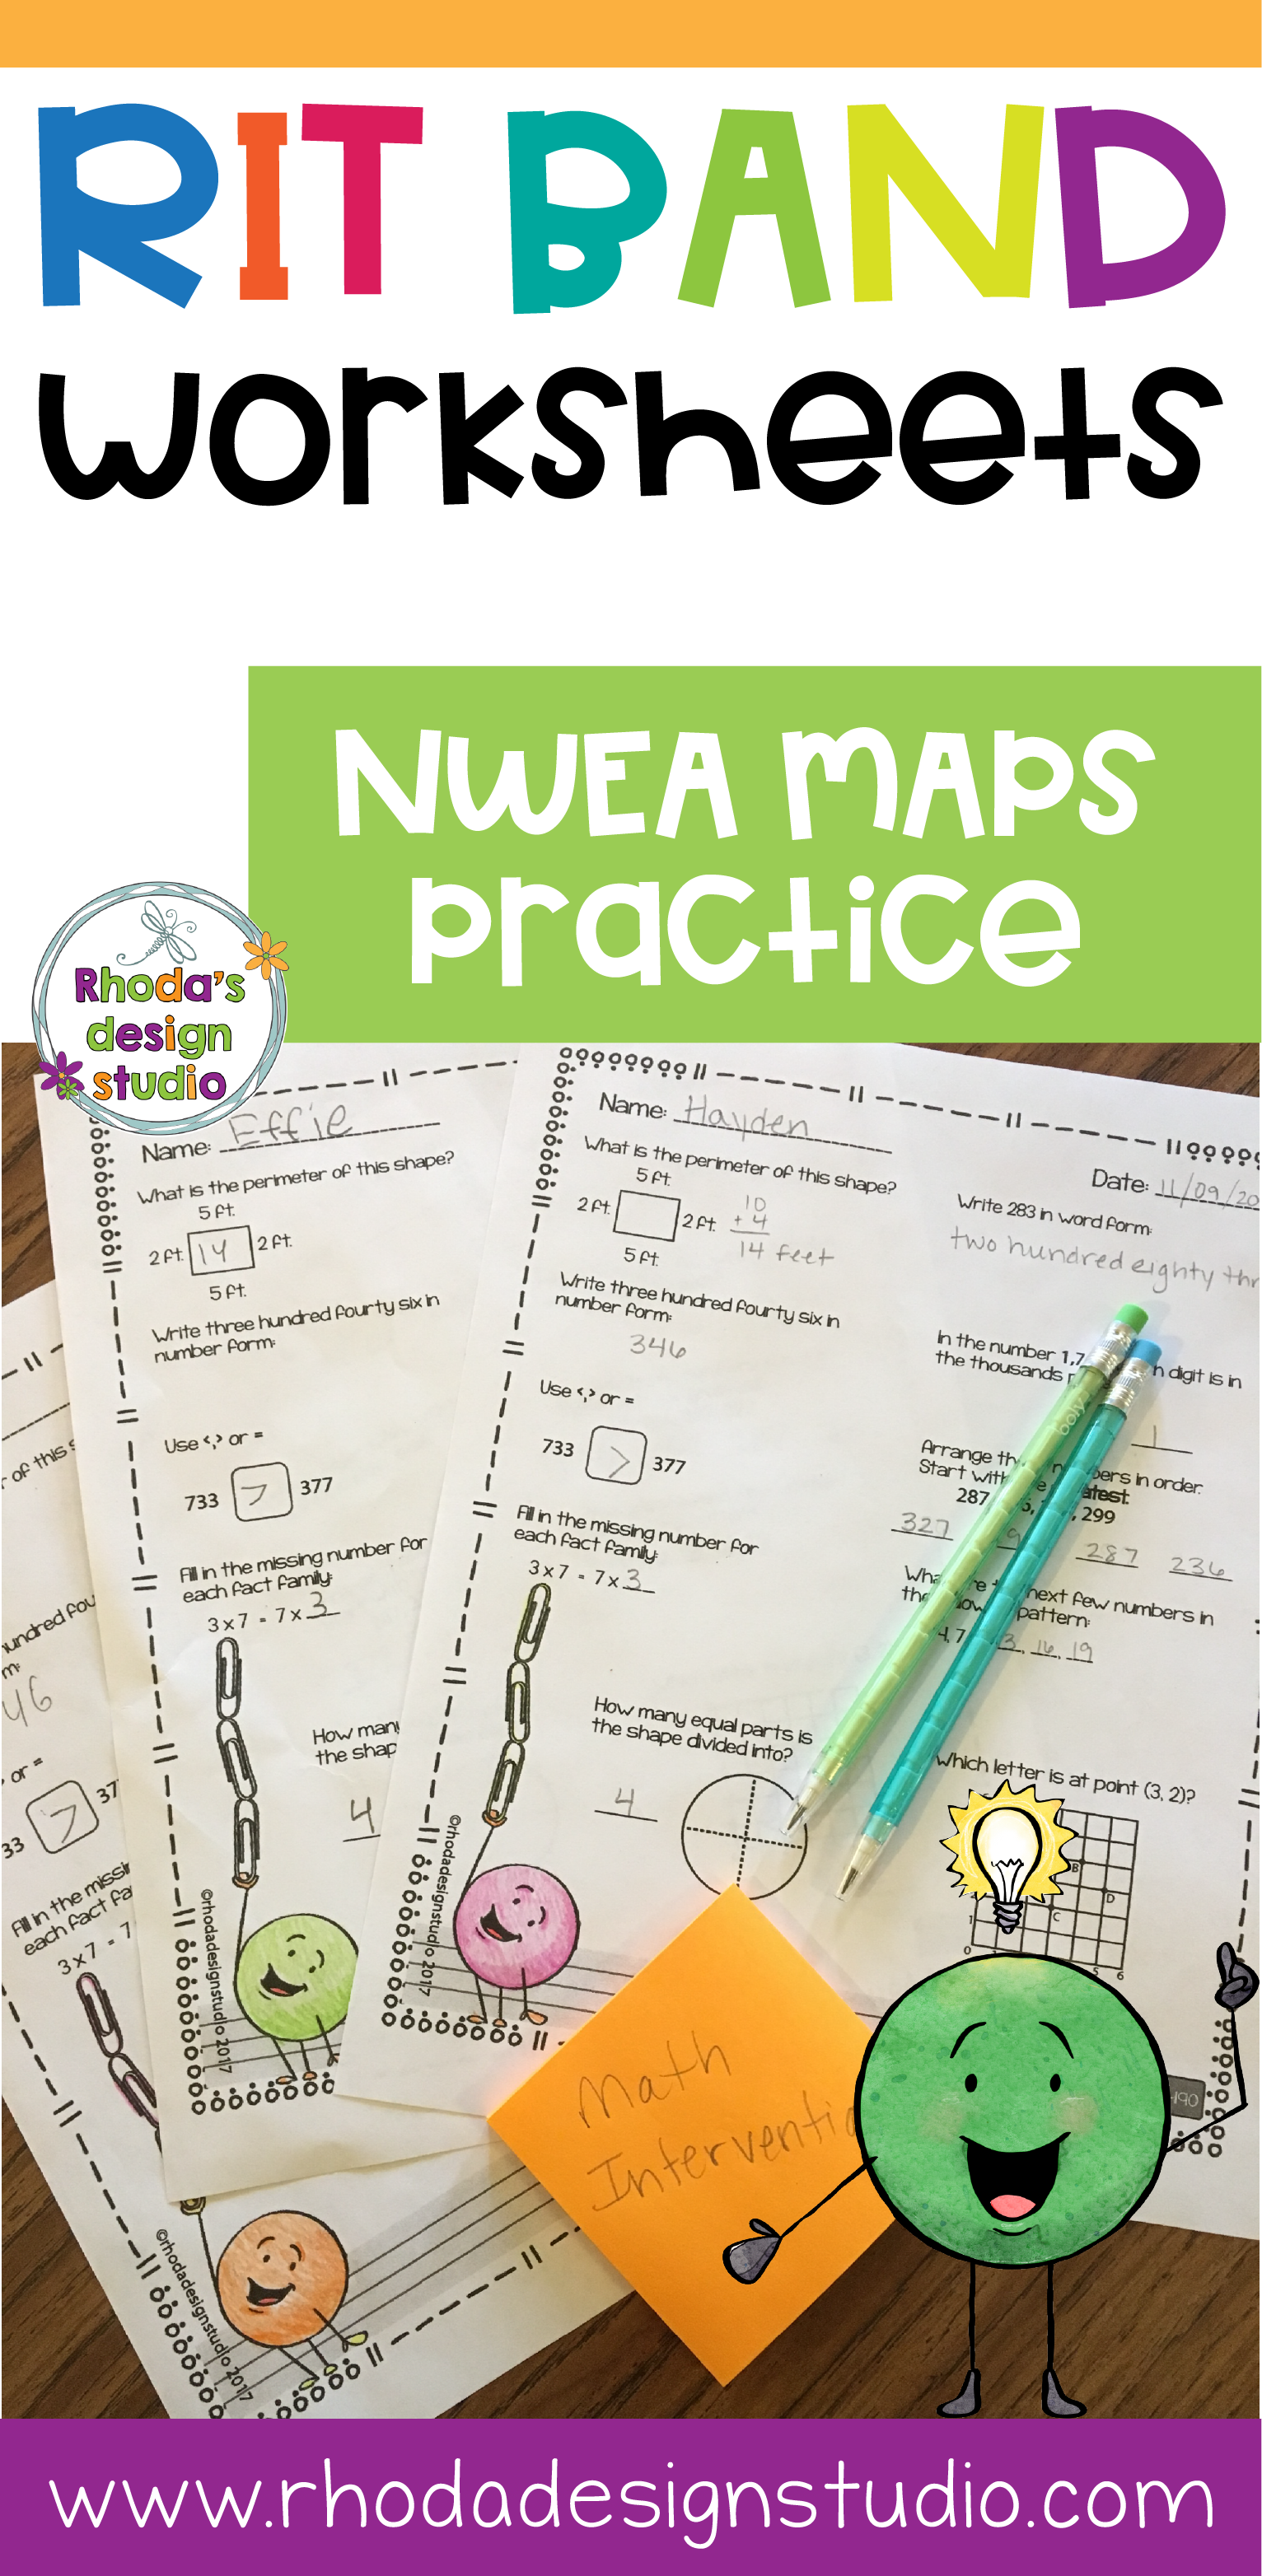 Nwea Map Task Cards That Can Be Used For Test Prep Or Math Interventions These Task Cards Cover Numbers And Operat Nwea Math Nwea Map Math Practice Worksheets